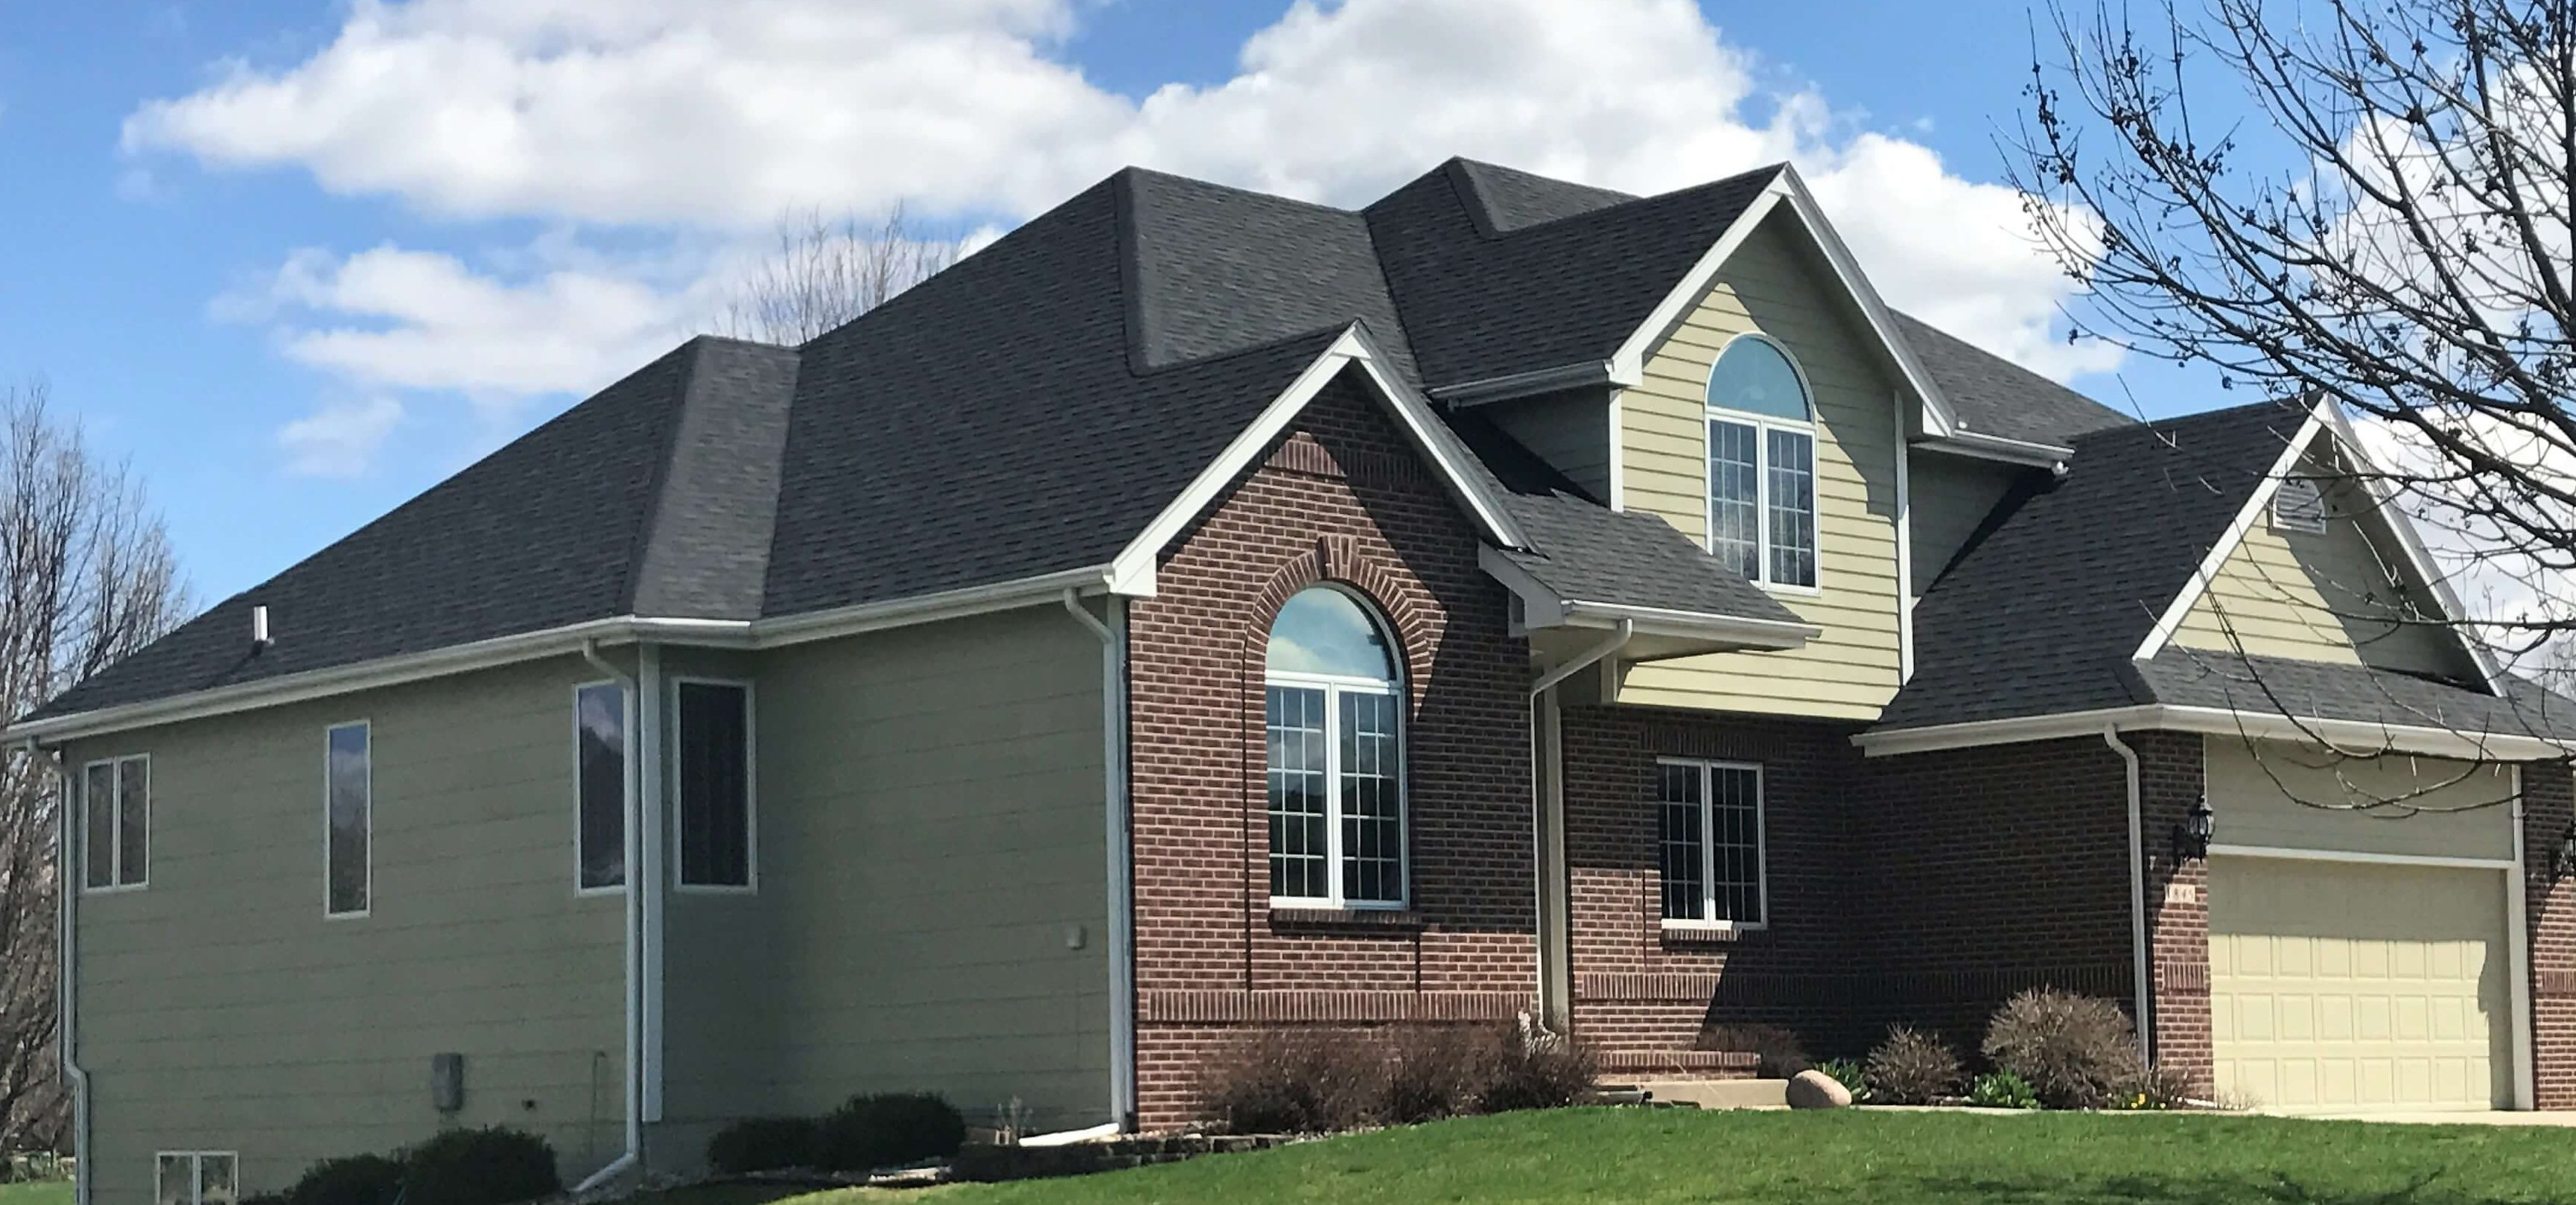 Architectural Style Asphalt Roofing Worth Exteriors